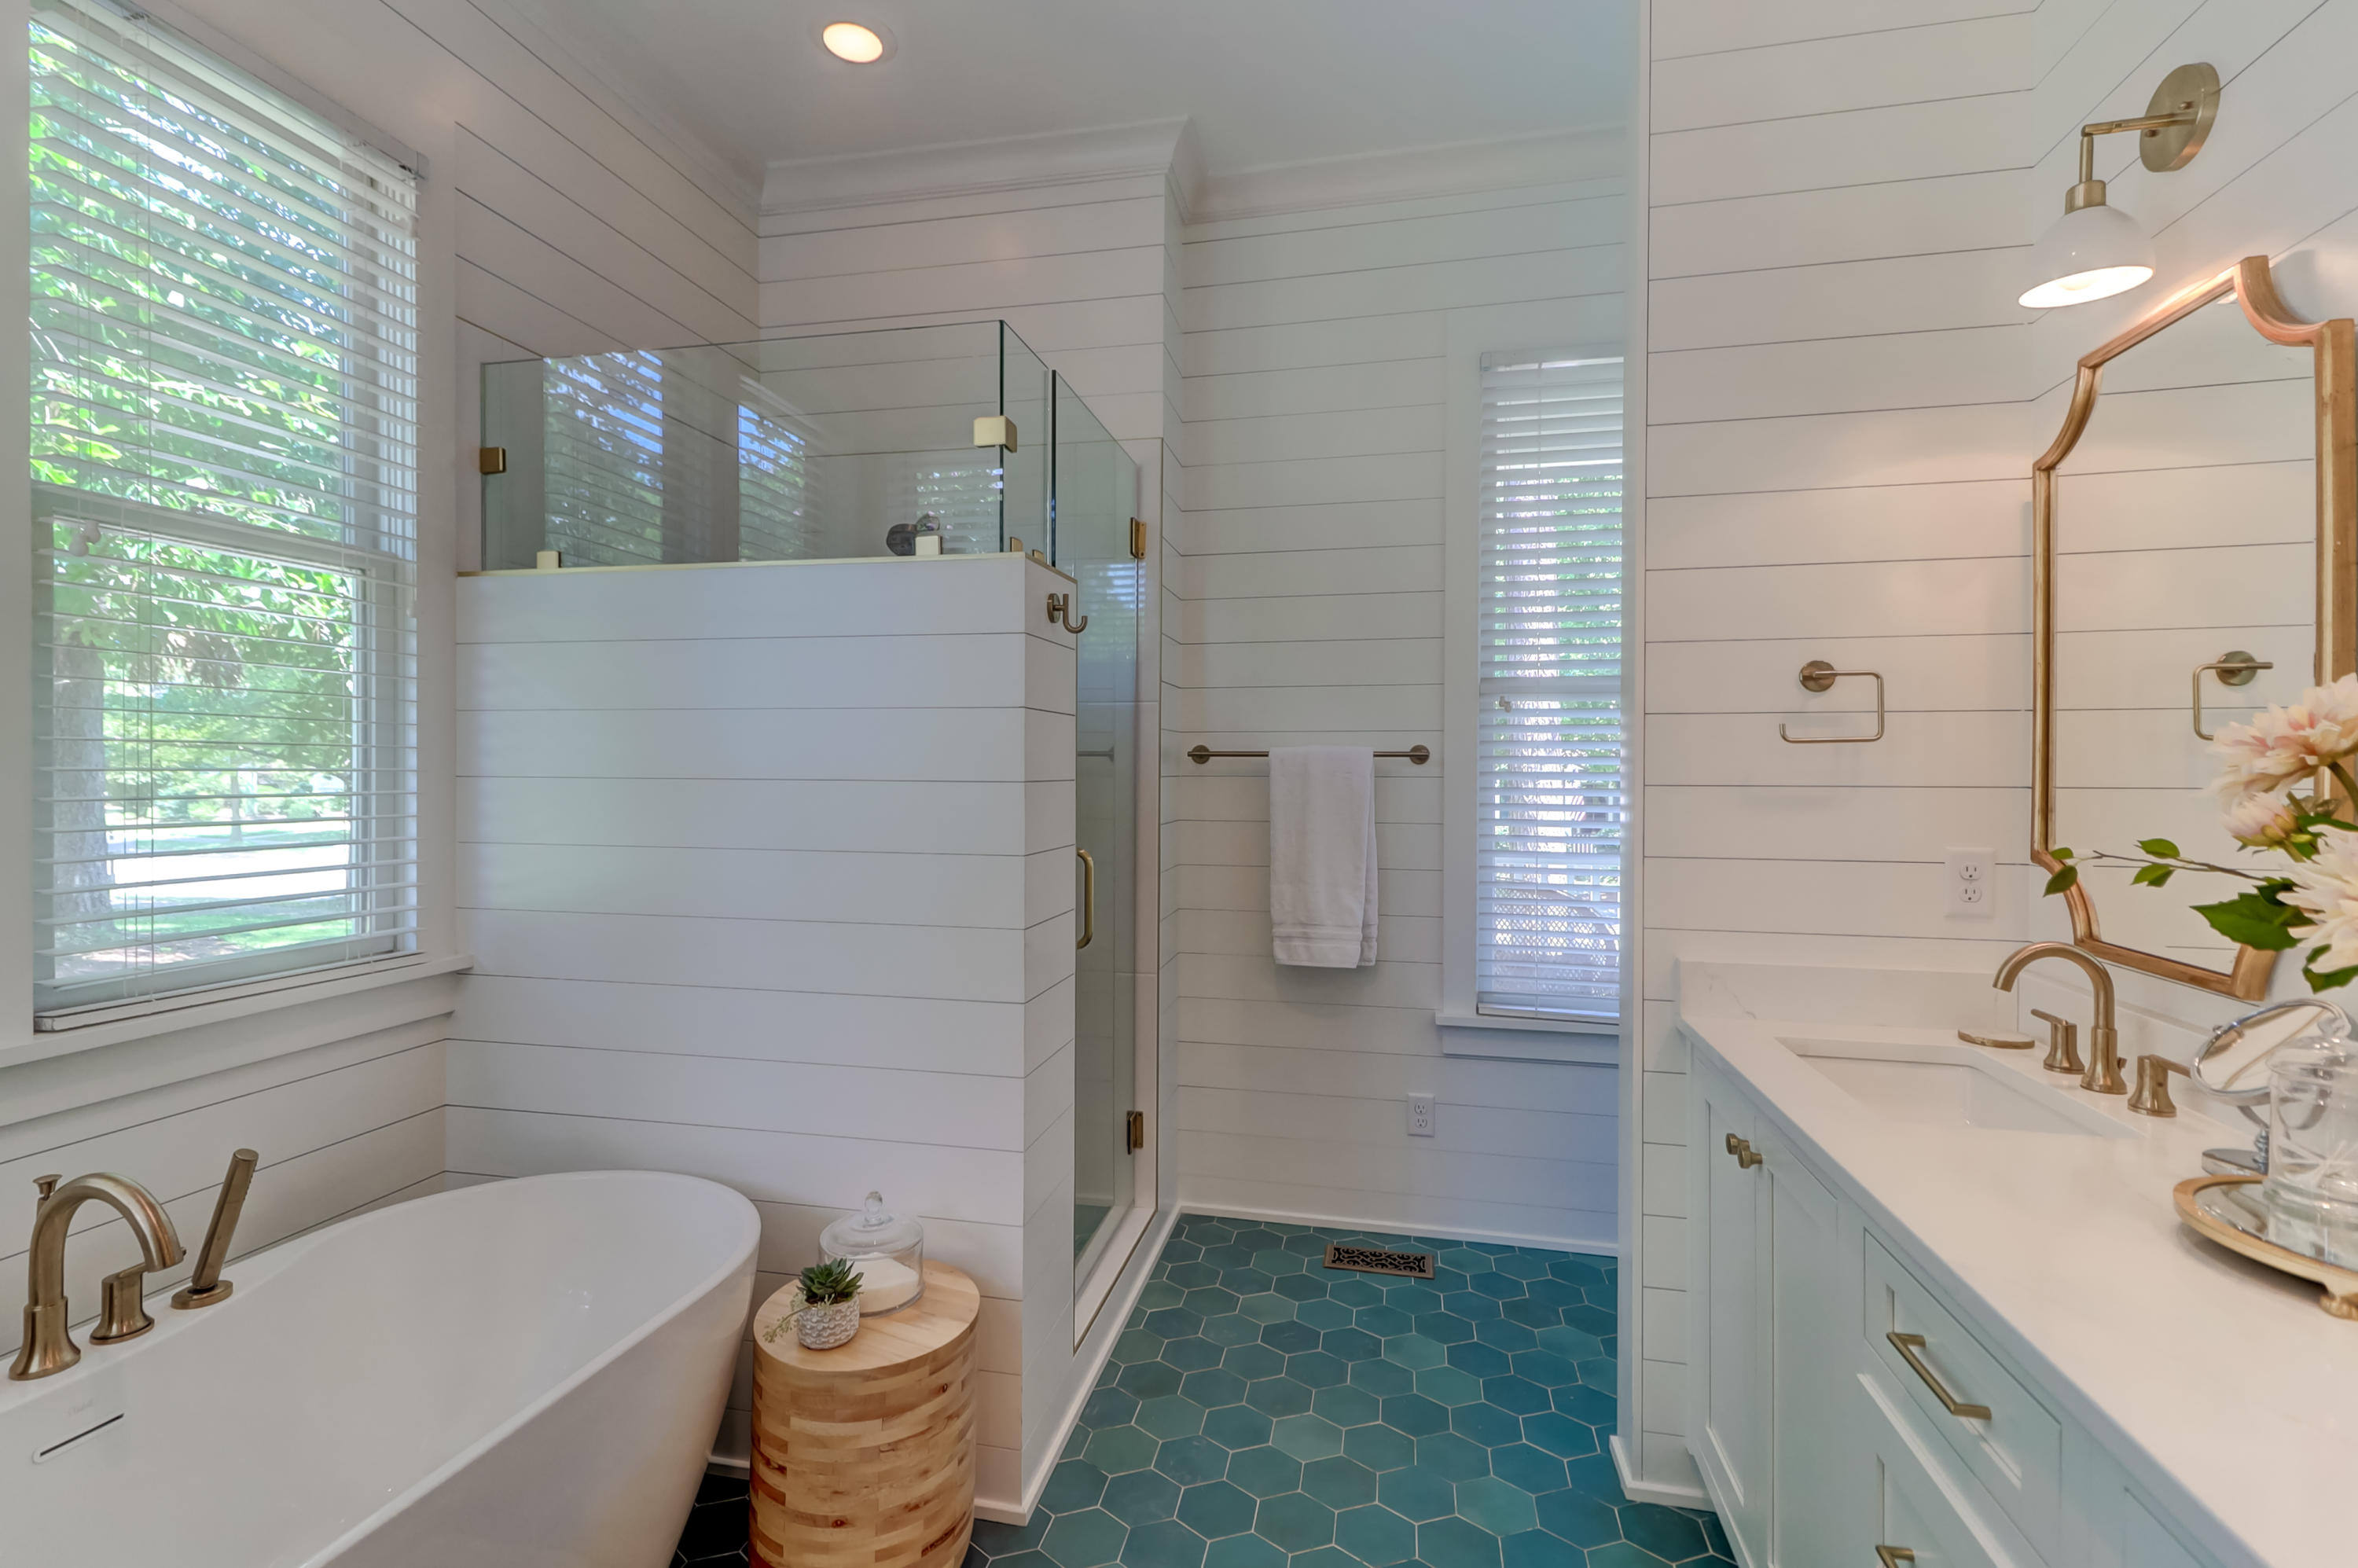 The Villages In St Johns Woods Homes For Sale - 5056 Coral Reef Dr, Johns Island, SC - 48